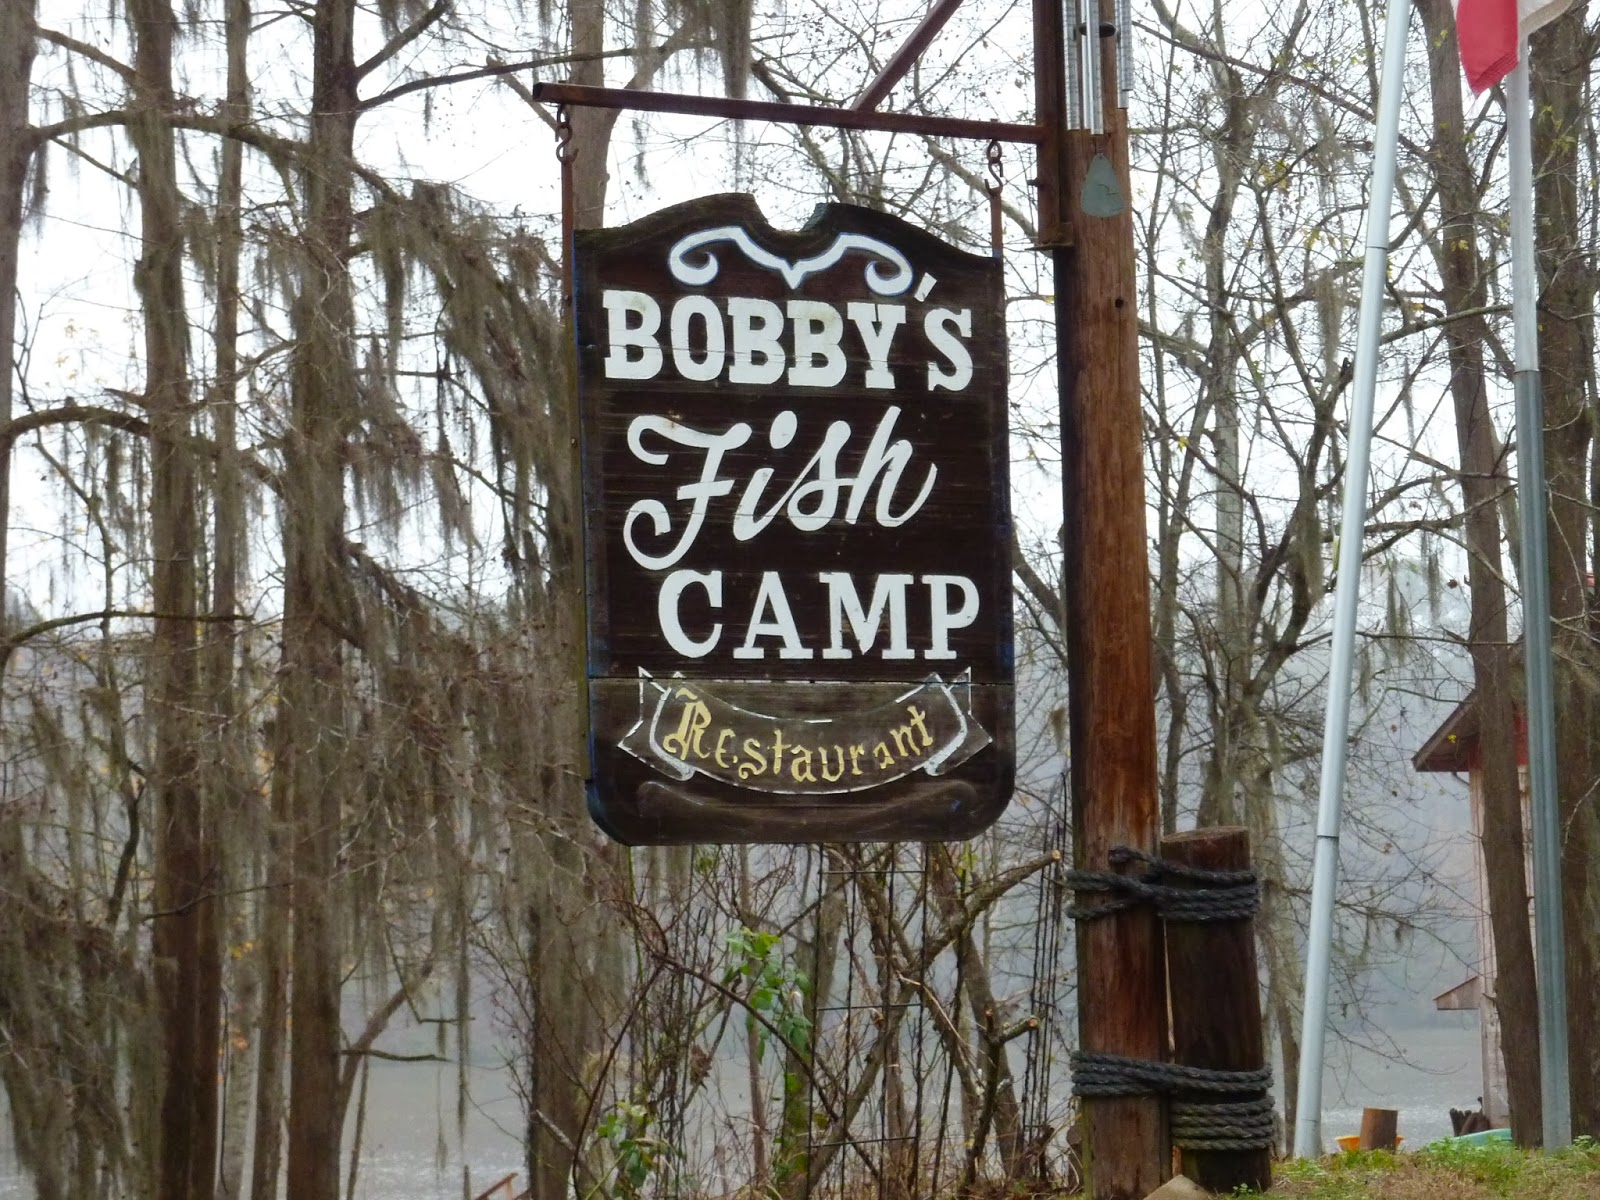 at 3 pm we motored into bobby s fish camp mm118 for tonight s dockage yeah we made it this will be a pricey night 1 50 per foot length of boat as